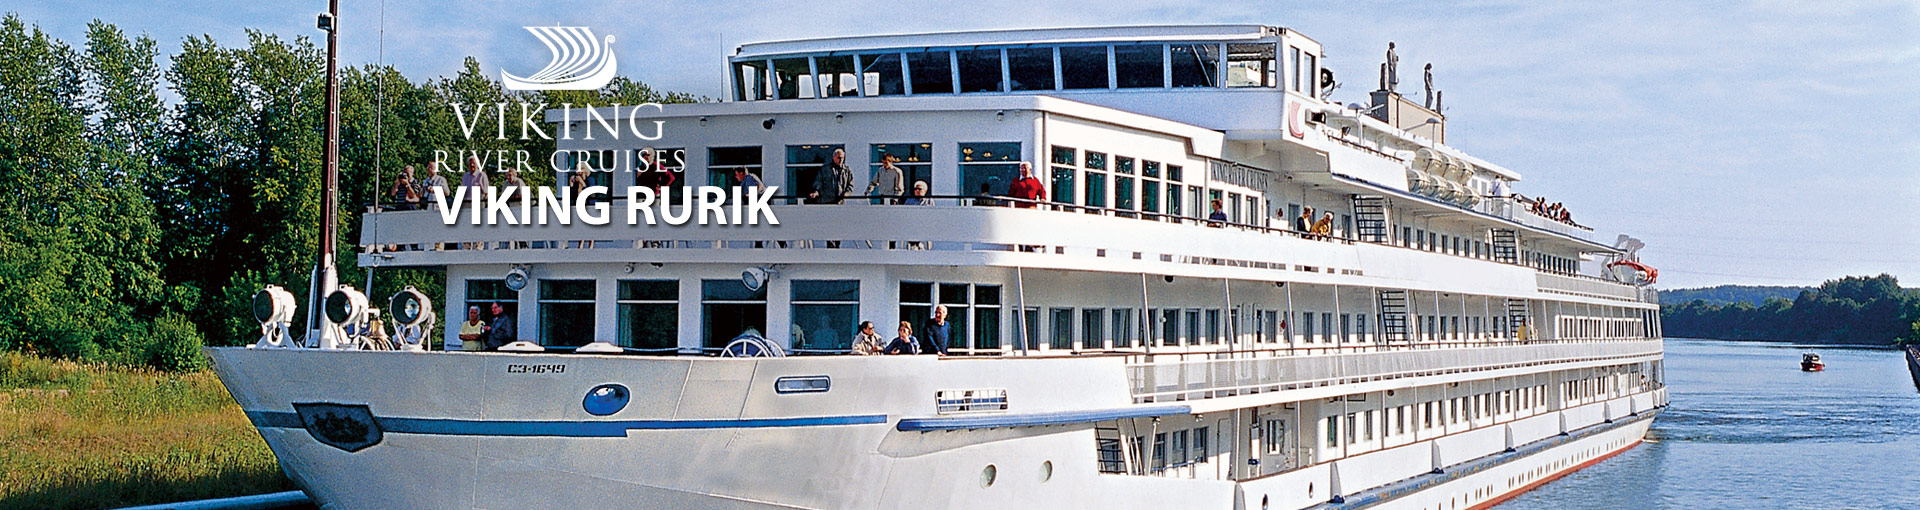 Viking Rivers Viking Rurik river cruise ship